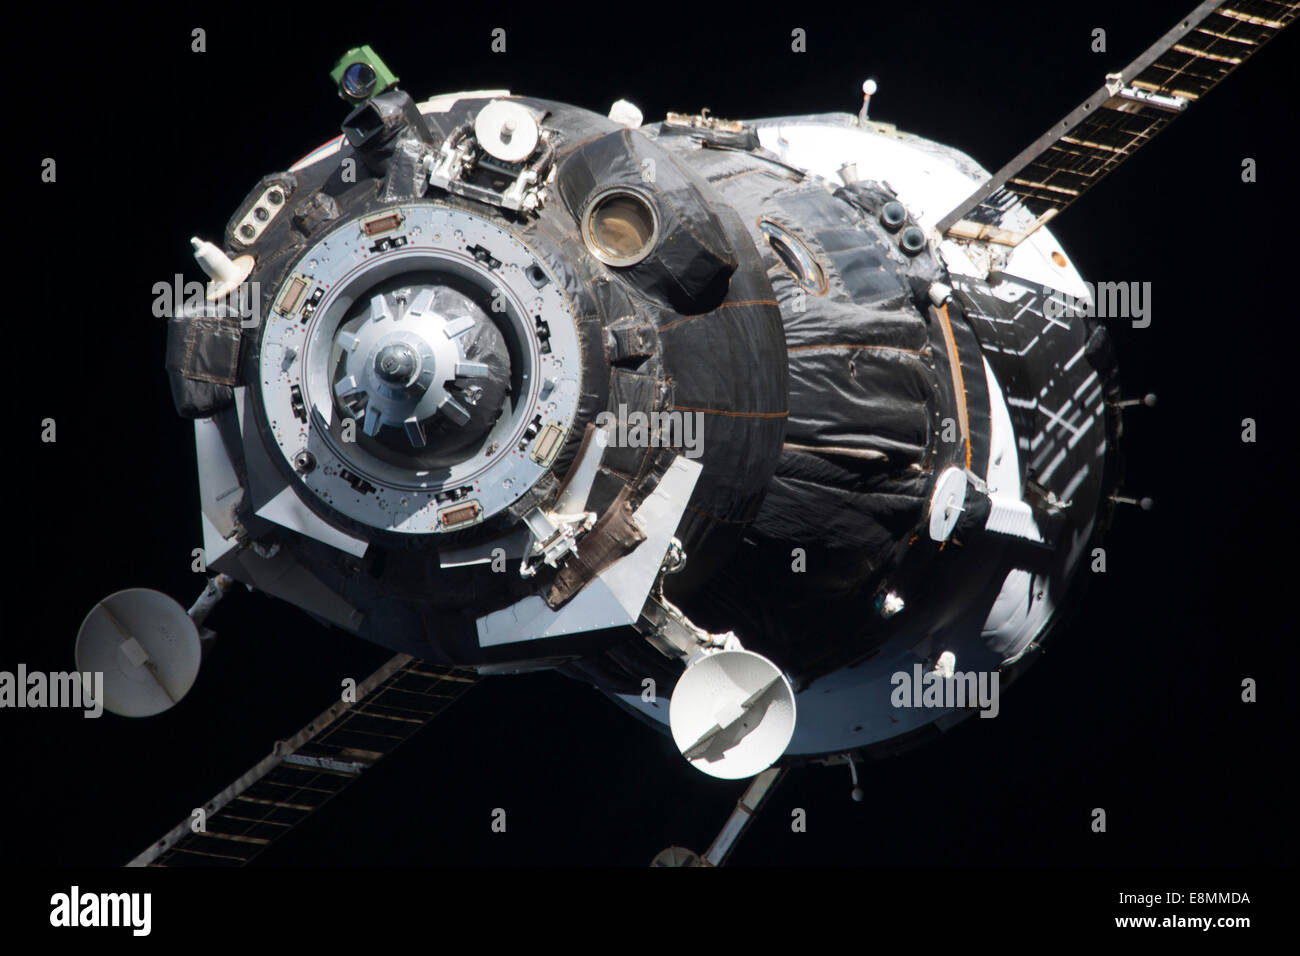 November 10, 2013 - The Soyuz TMA-09M spacecraft departs from the International Space Station's Zvezda Service - Stock Image